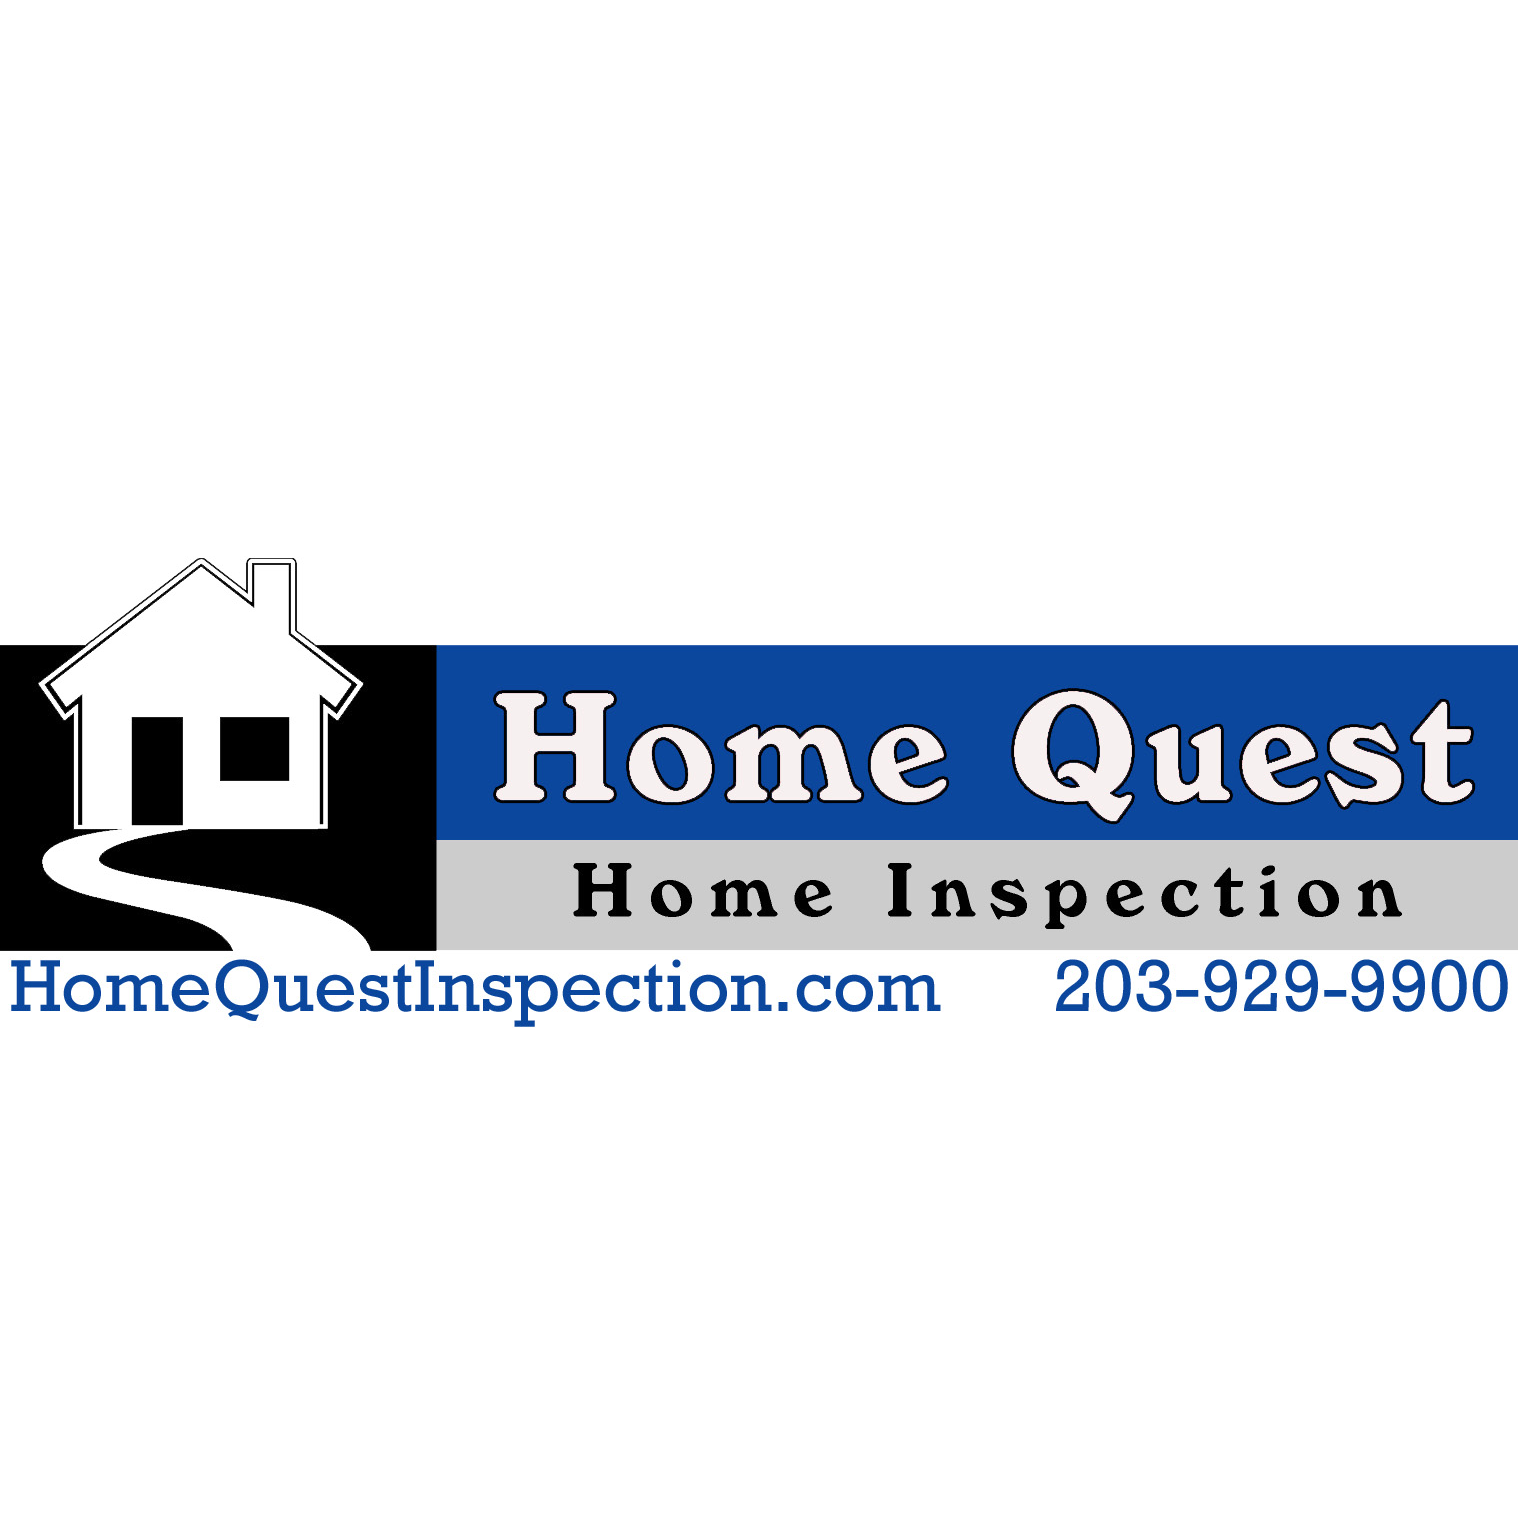 Home Quest Home Inspection - Shelton, CT - Business & Secretarial